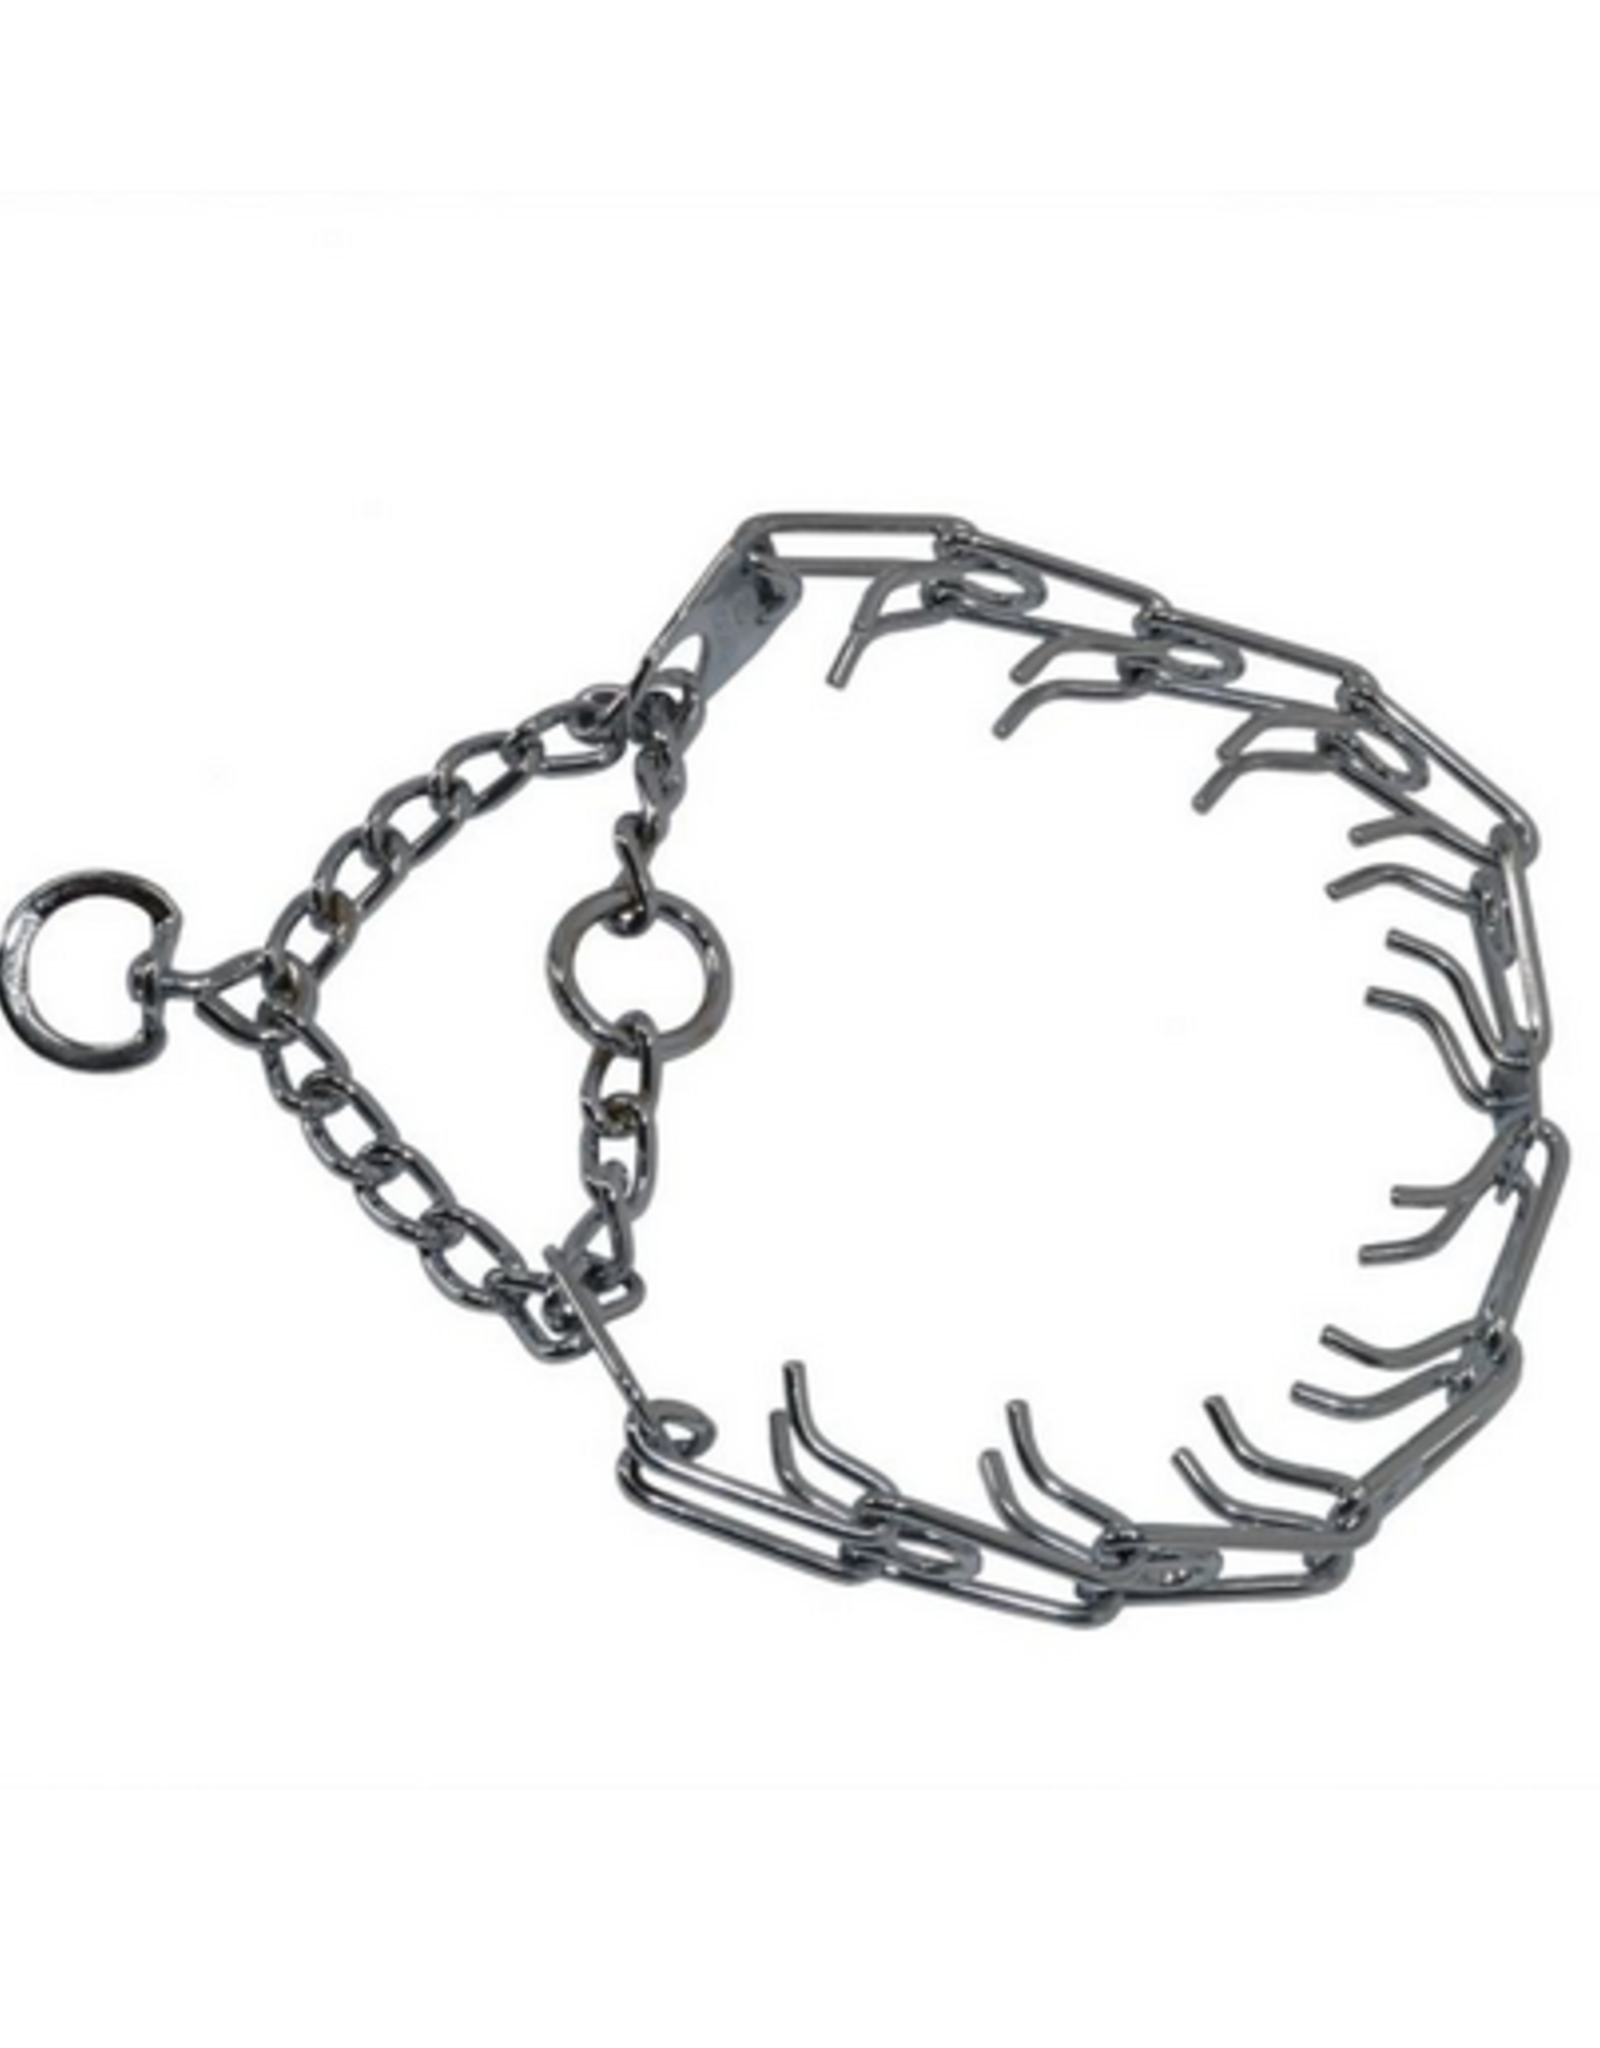 Chrome-Plated Pinch Collar